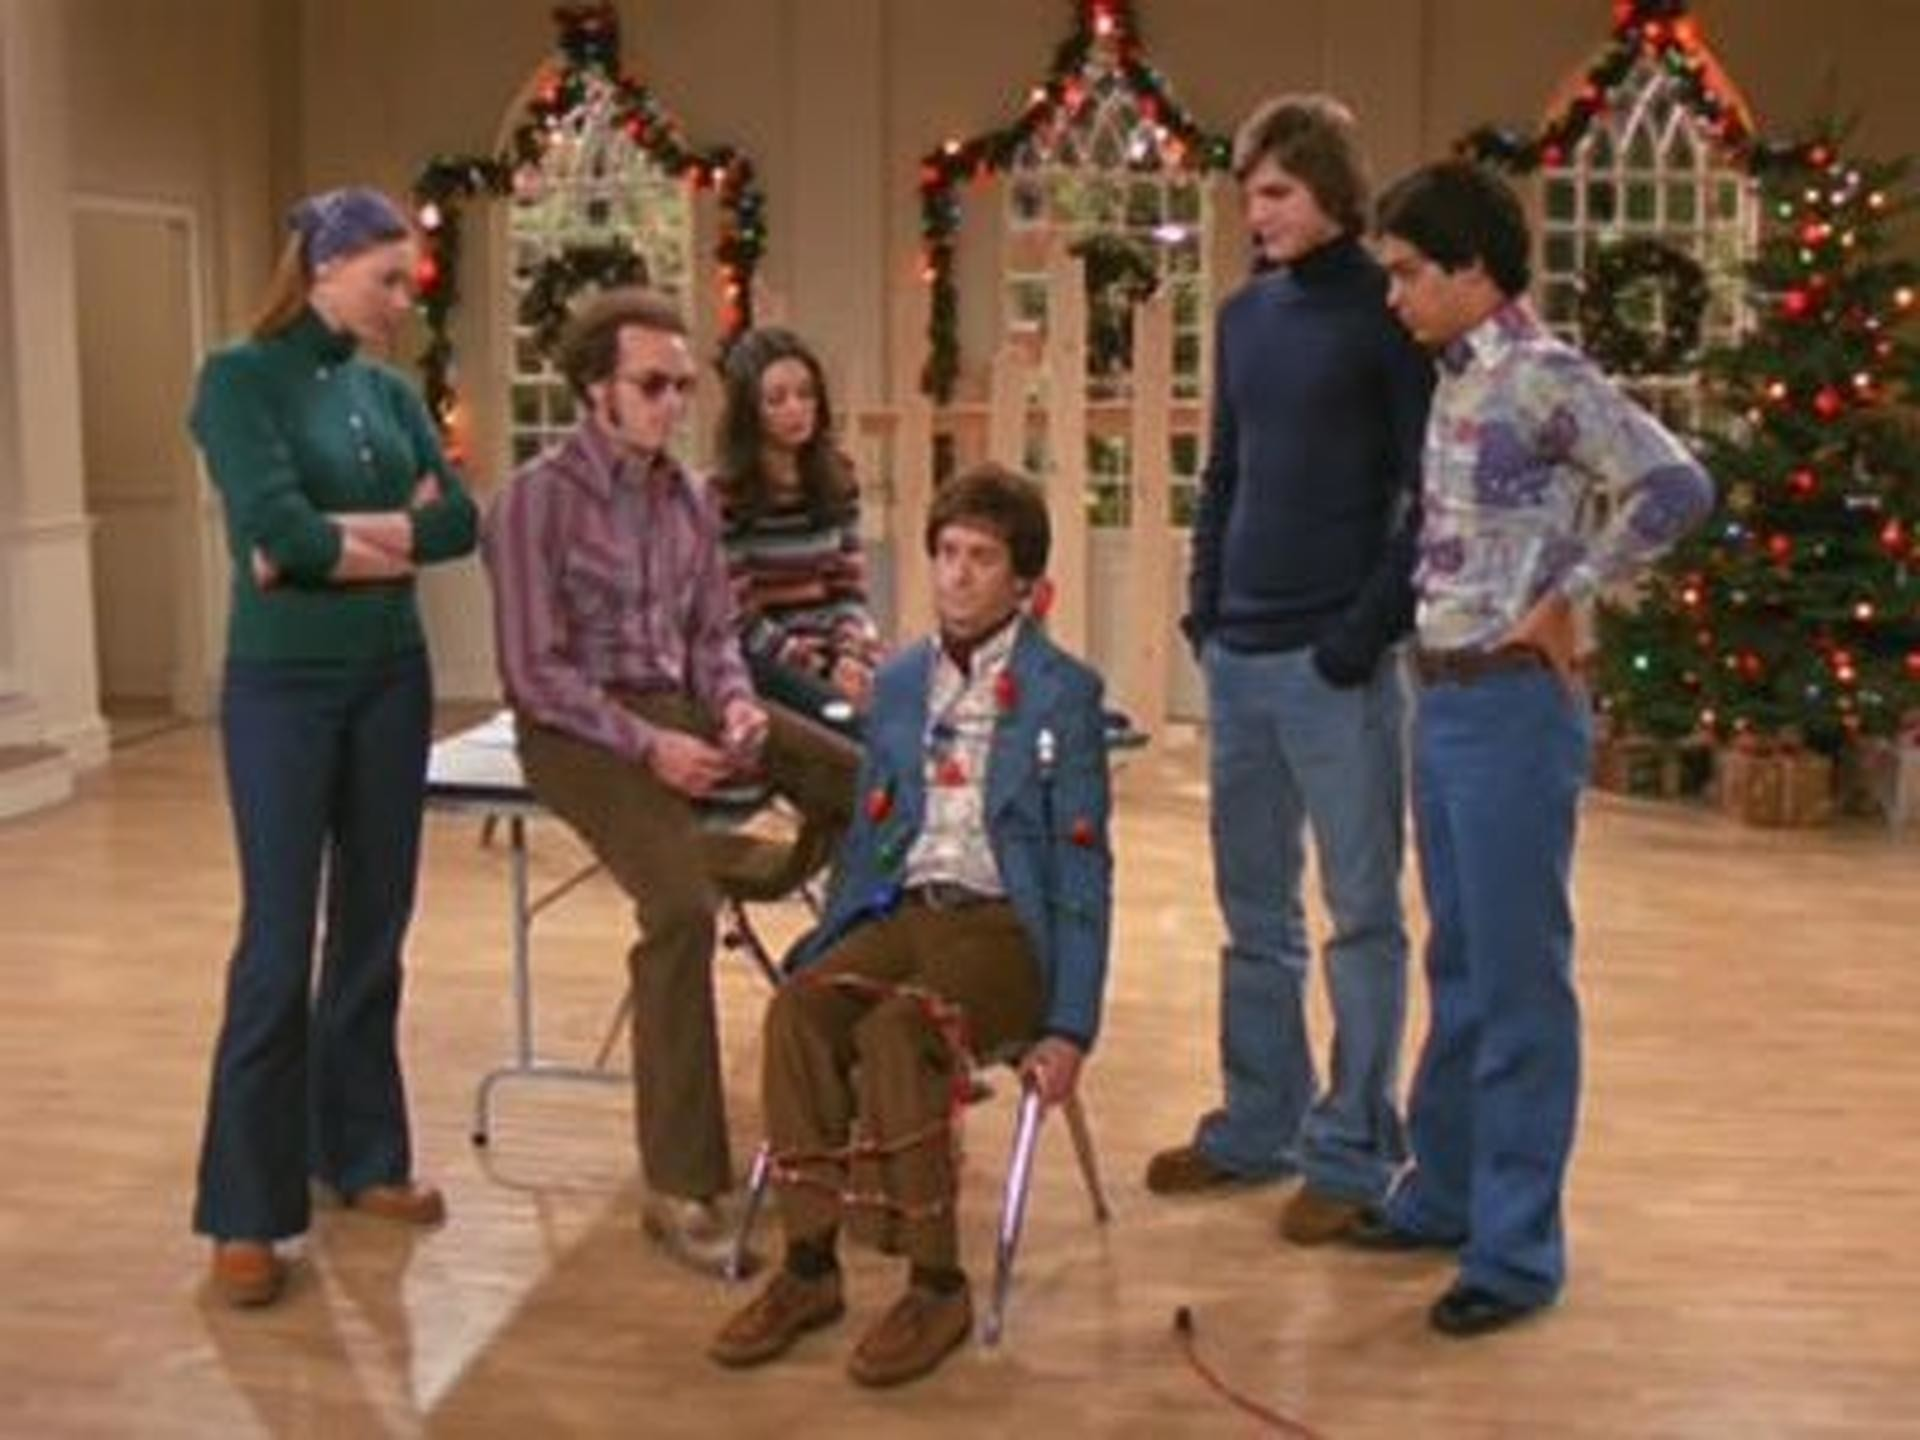 1920x1440 That 70s Show (S04E12): An Eric Forman Christmas Summary - Season 4 Episode  12 Guide